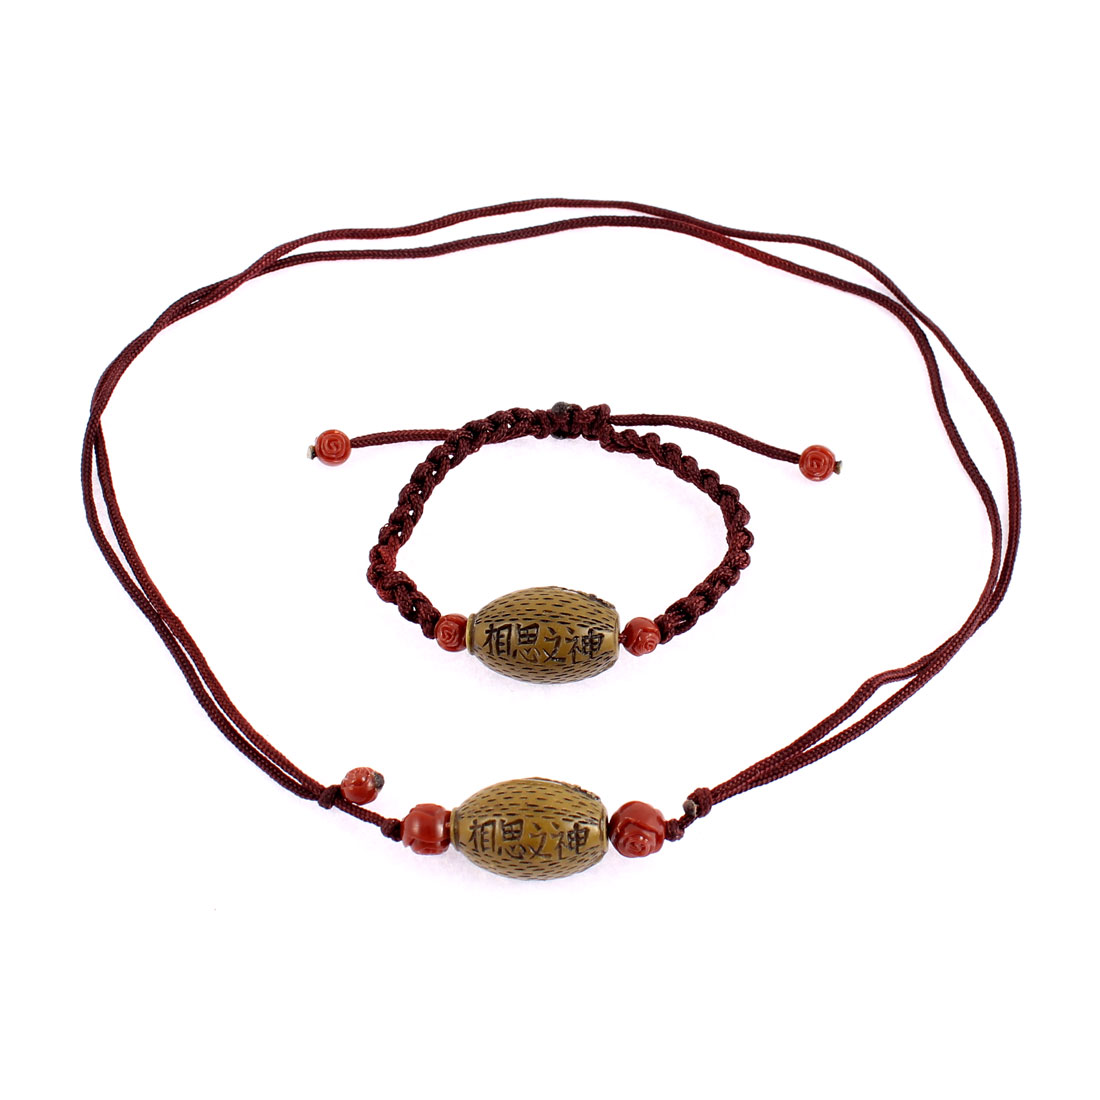 Unisex Carved Oval Bead Accent Adjustable Necklace Chain Bracelet 2 in 1 Set Dark Red Olive Green